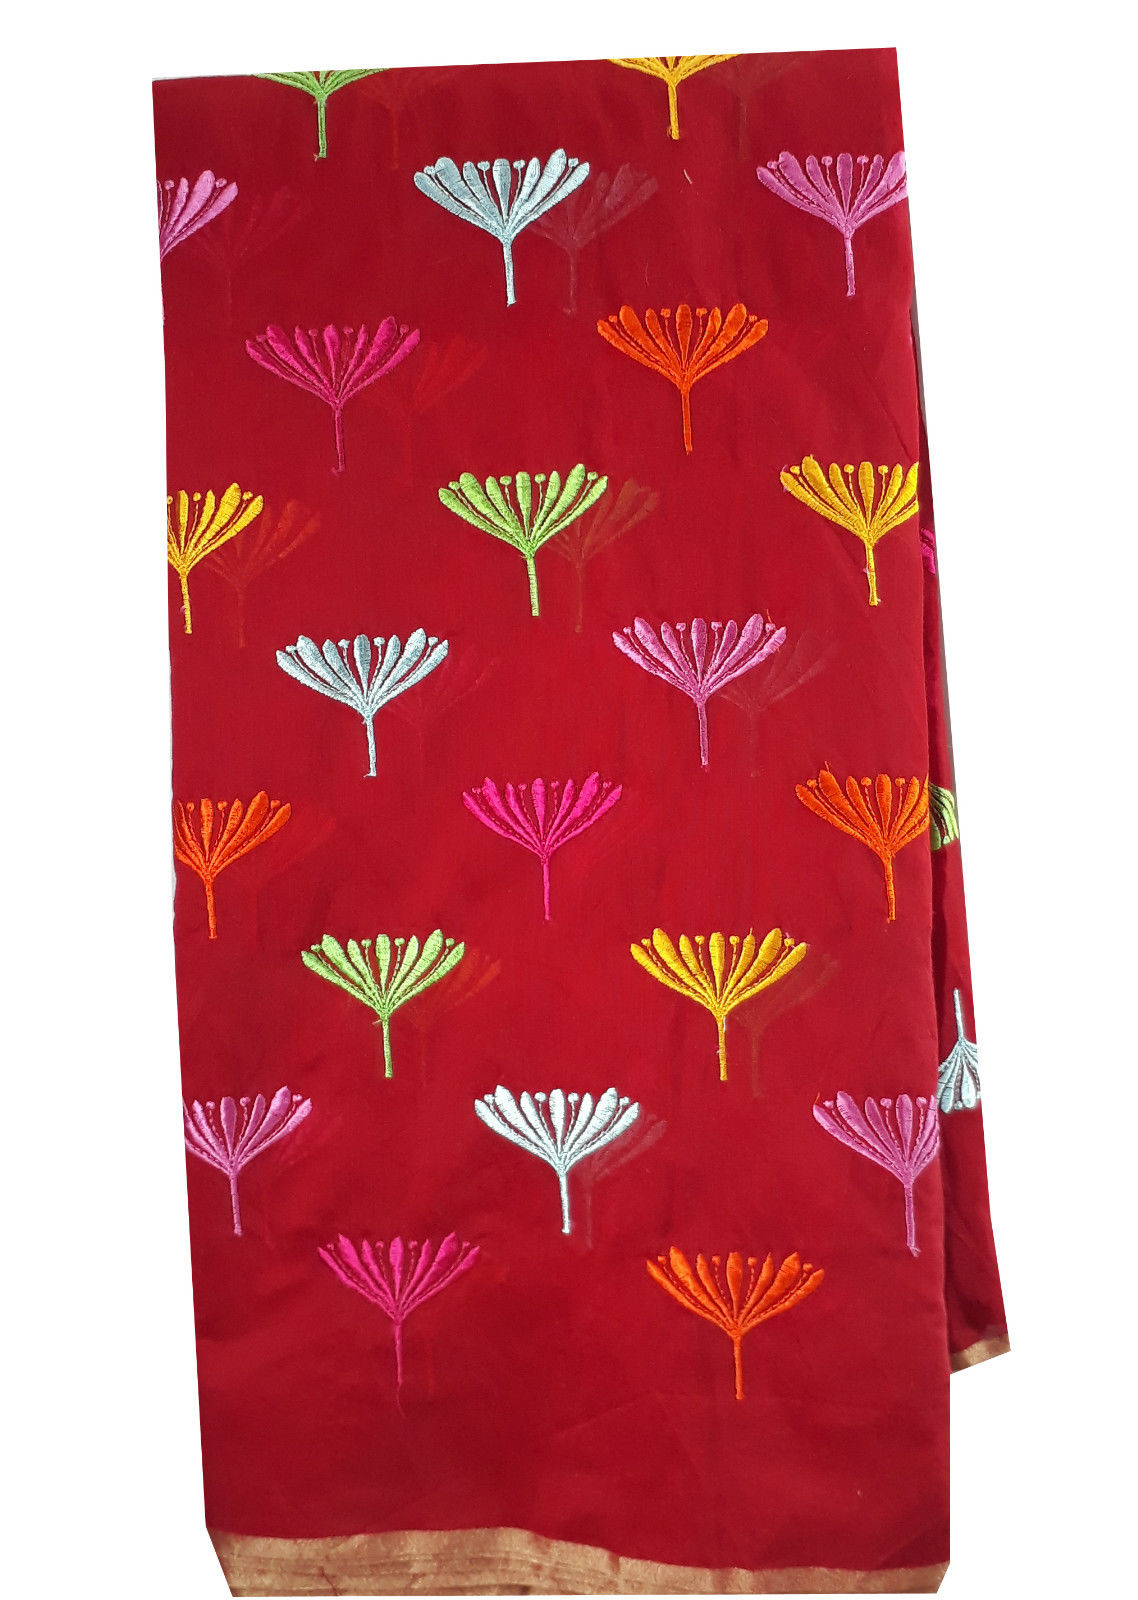 running material online india fabric embroidery designs Chanderi Cotton Red 43 inches Wide _Red